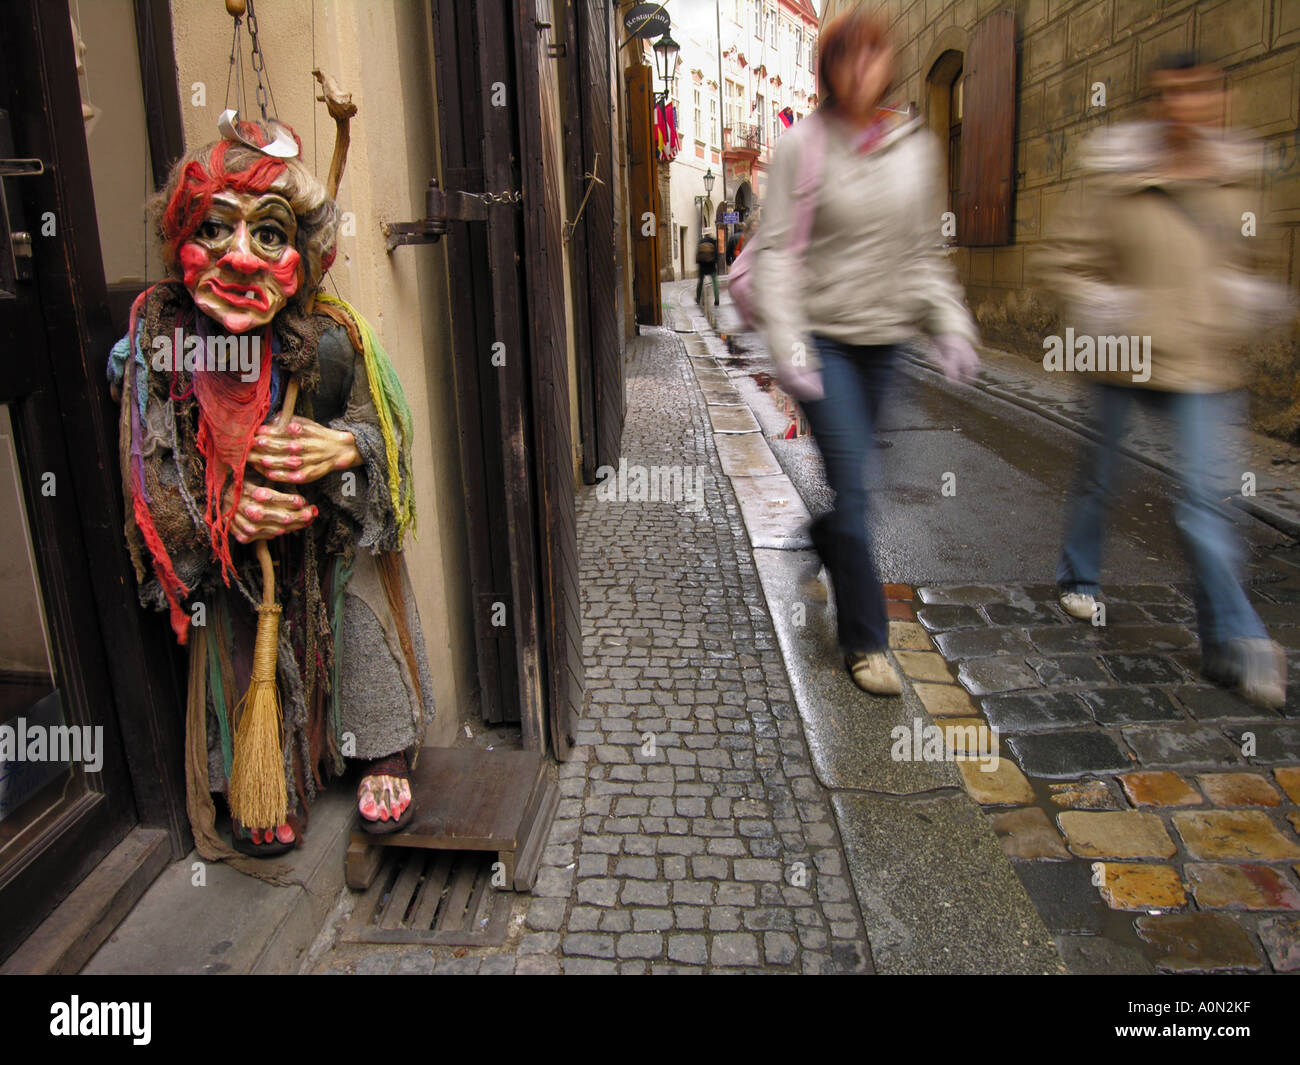 A Halloween puppet in for form of a witch, in a shop doorway in a cobbled street in Prague, Czech Republic. - Stock Image